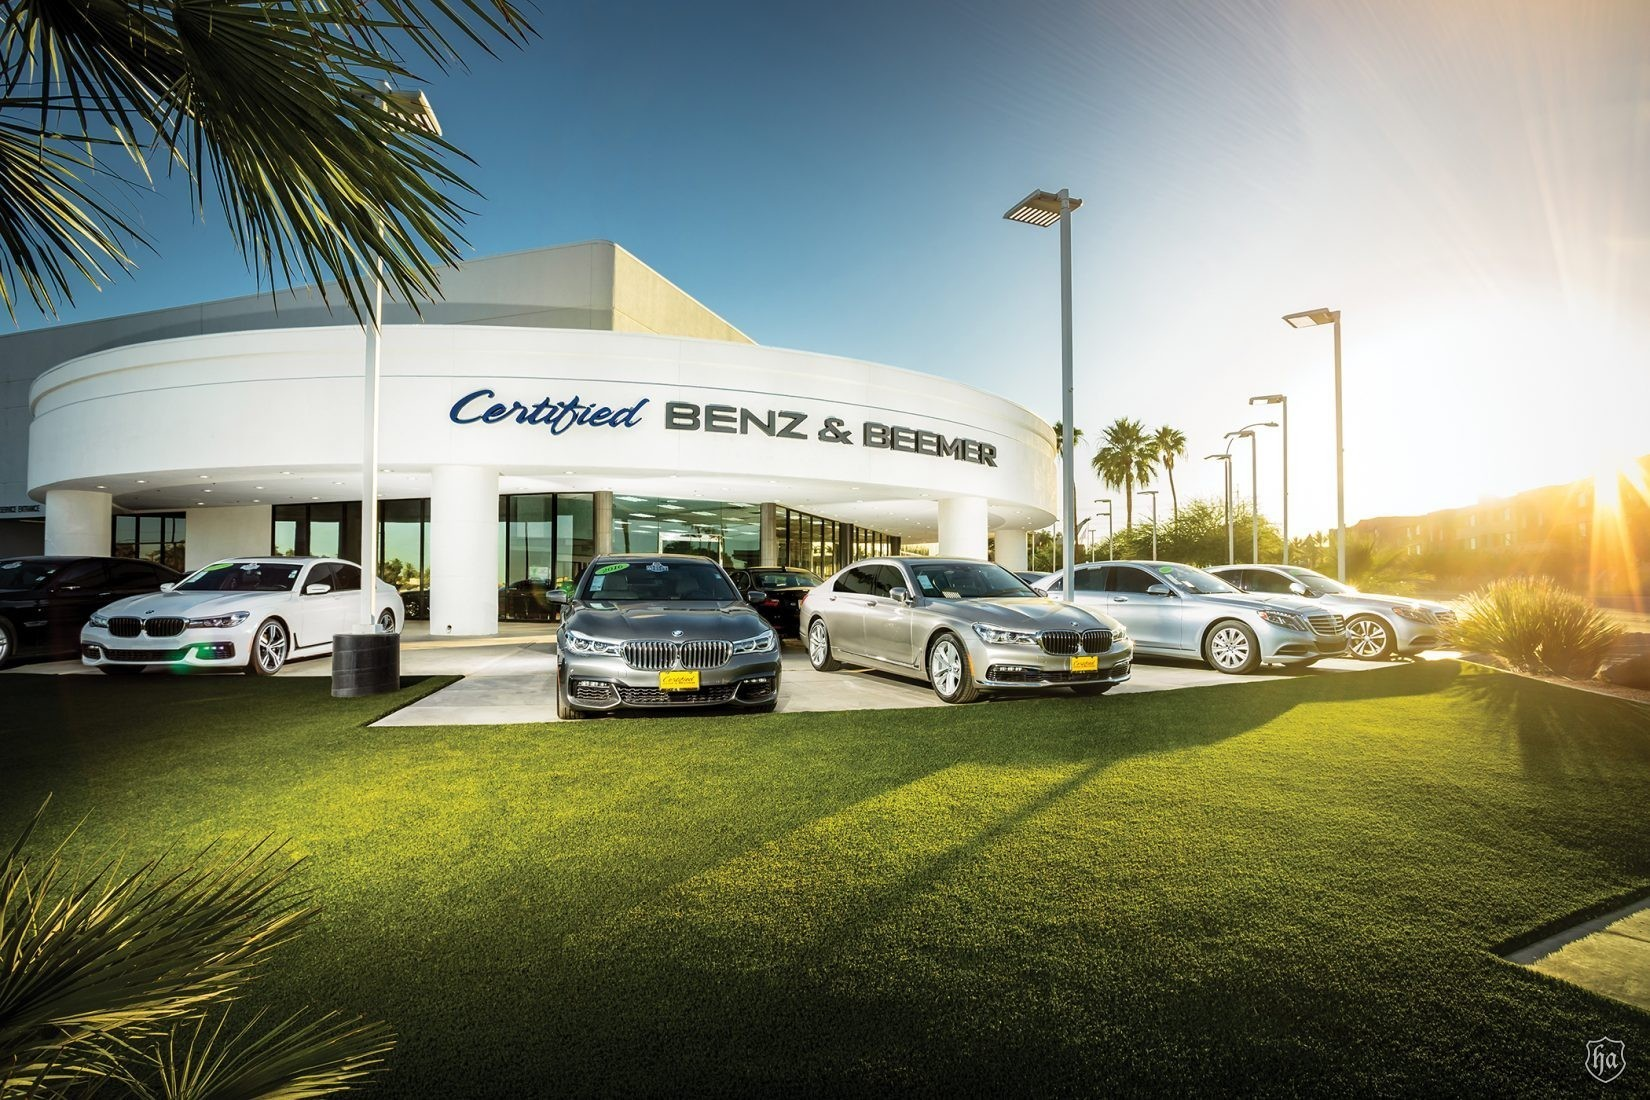 Certified Benz Amp Beemer Expands With New Location